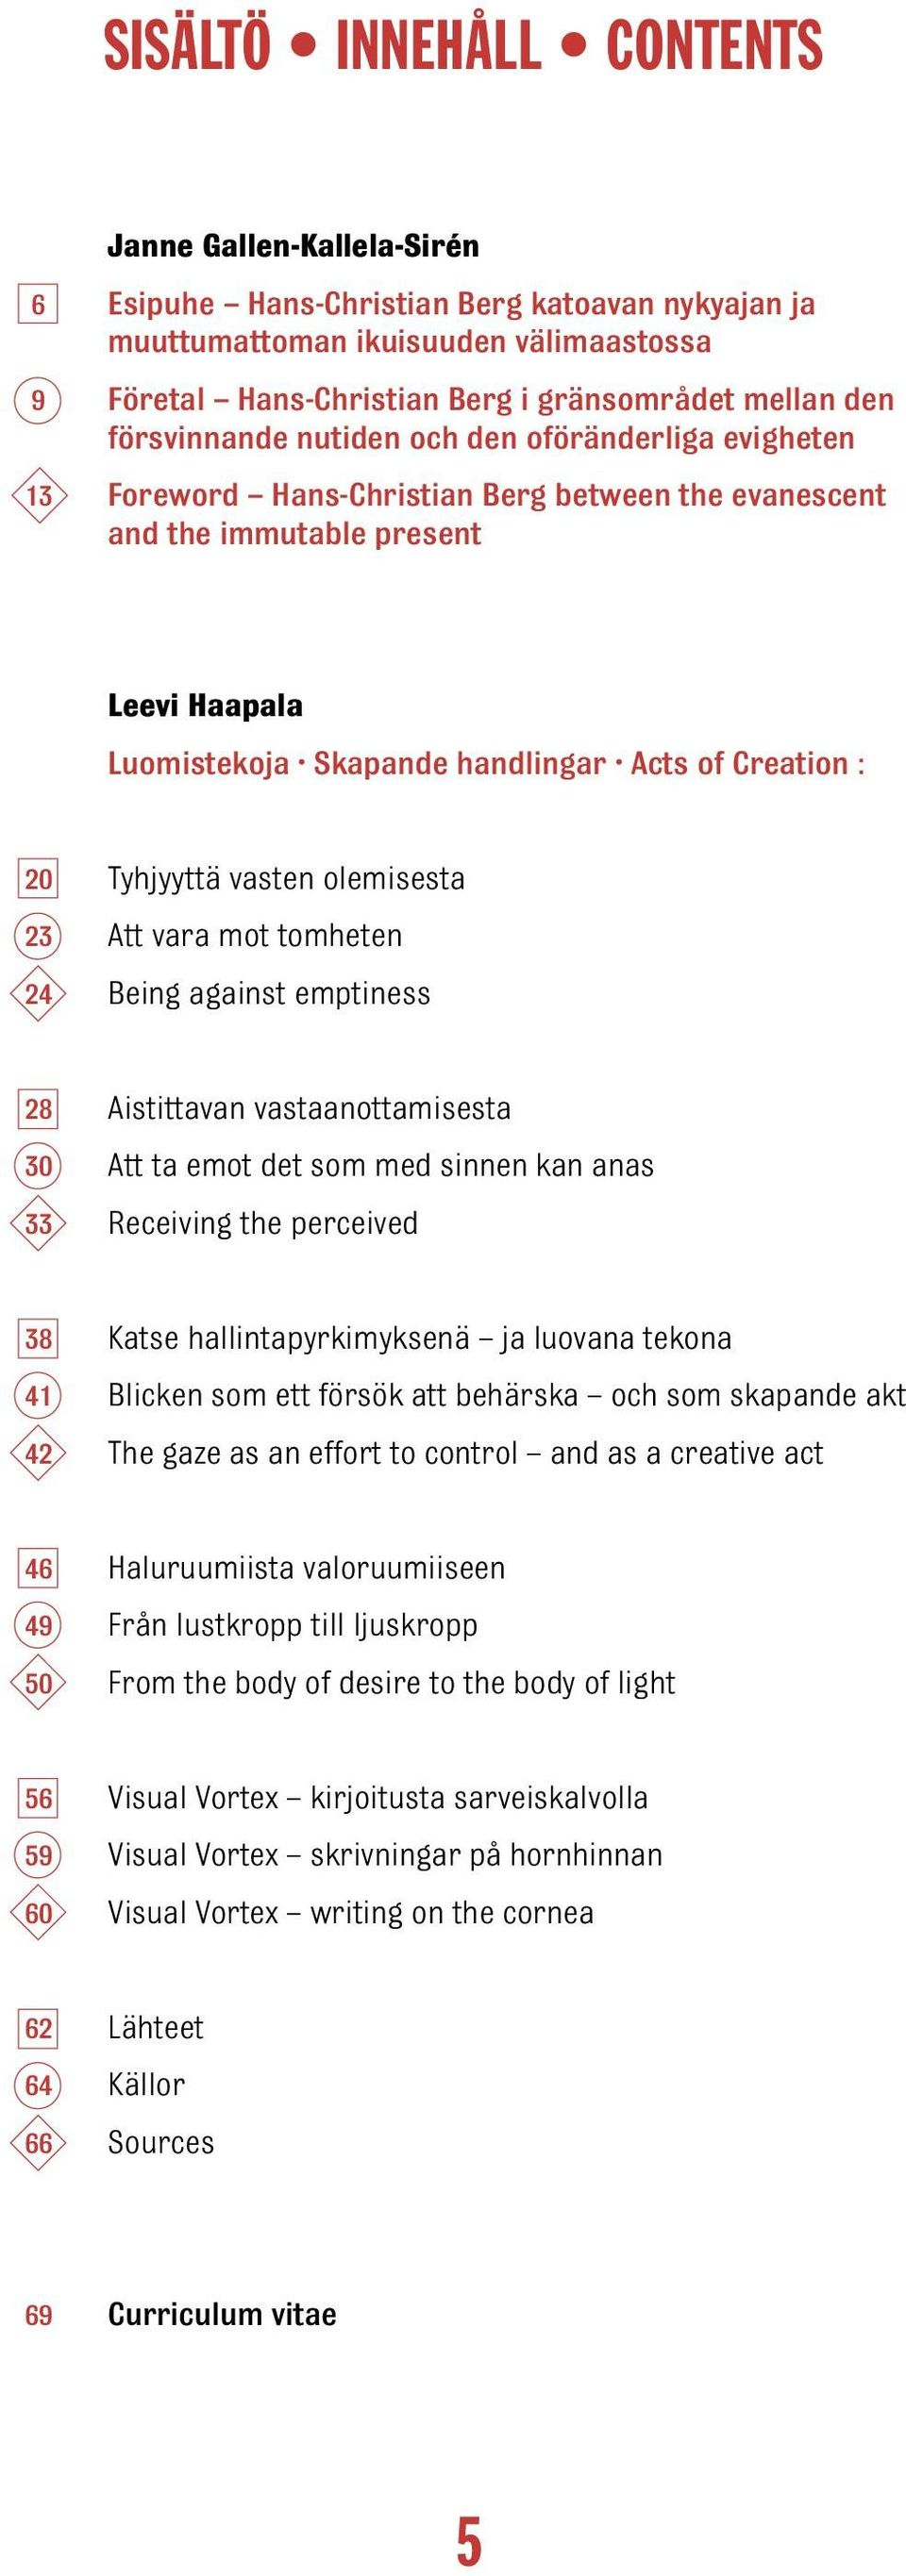 20 Tyhjyyttä vasten olemisesta 23 Att vara mot tomheten 24 Being against emptiness 28 Aistittavan vastaanottamisesta 30 Att ta emot det som med sinnen kan anas 33 Receiving the perceived 38 Katse